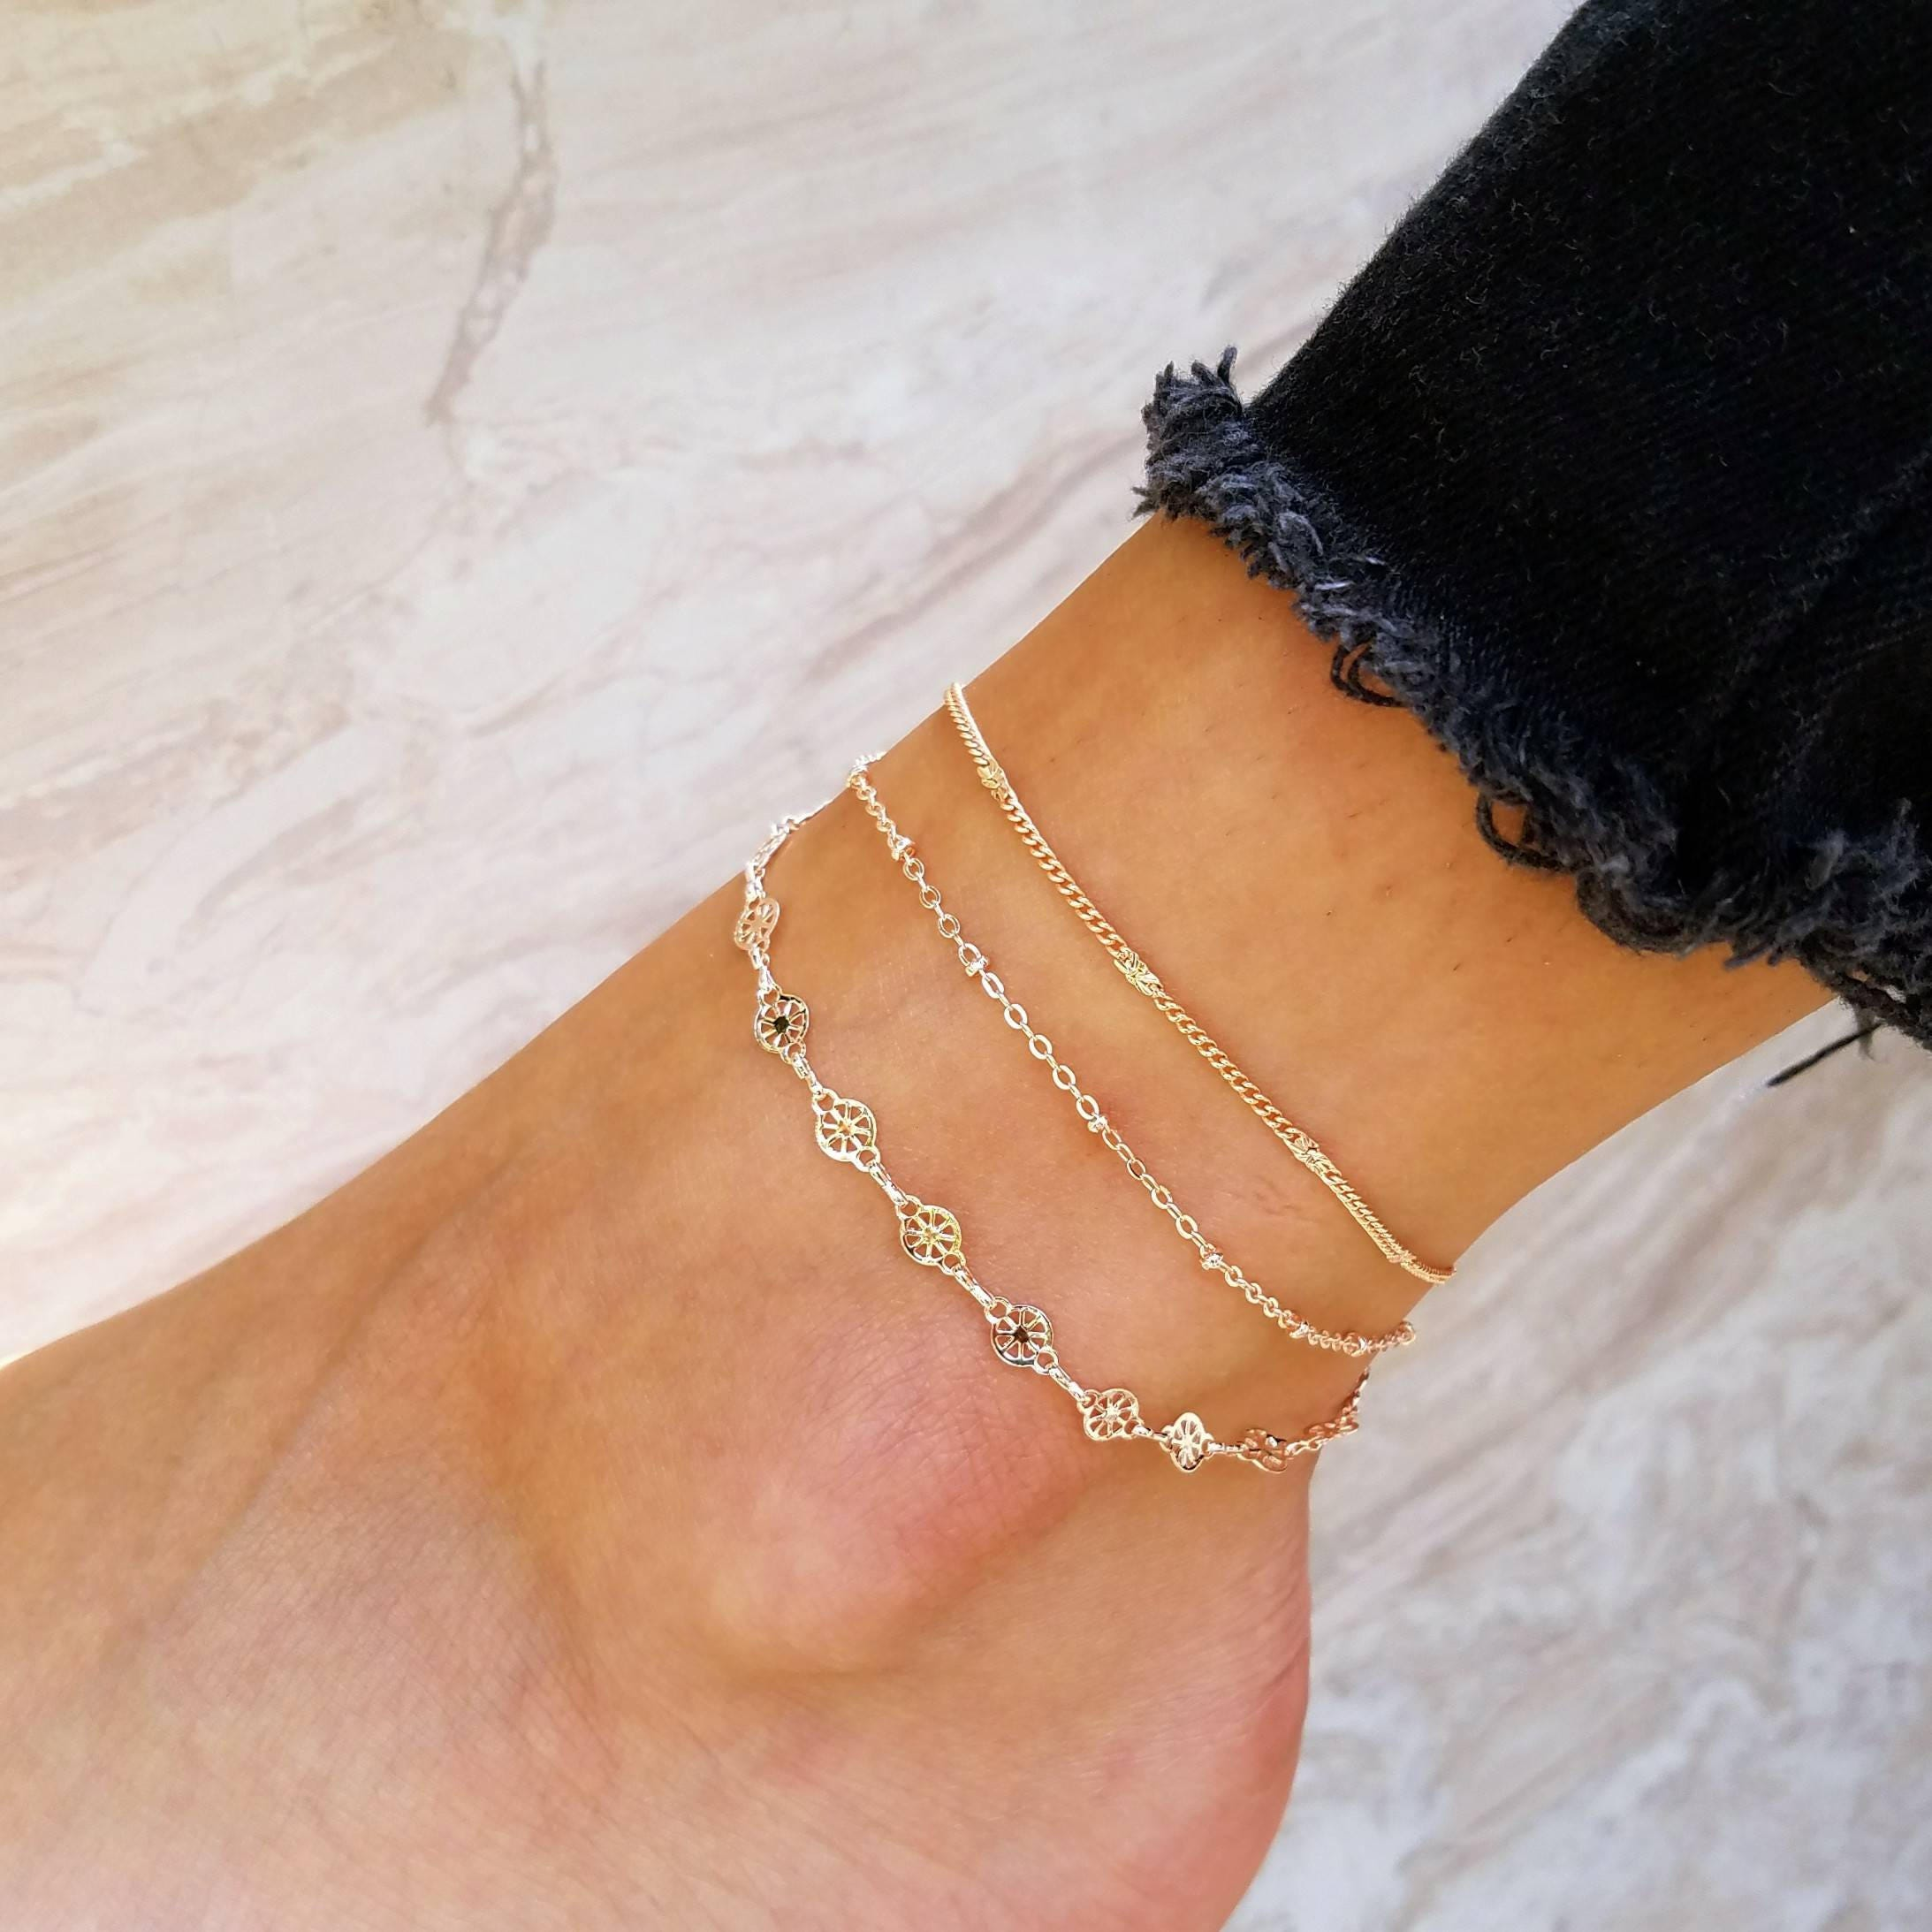 trendy anklet summer store styles for feet product pure pendants anklets zirconia charms queen foot wearing jewelry brand nice silver fashion wear crown ladies